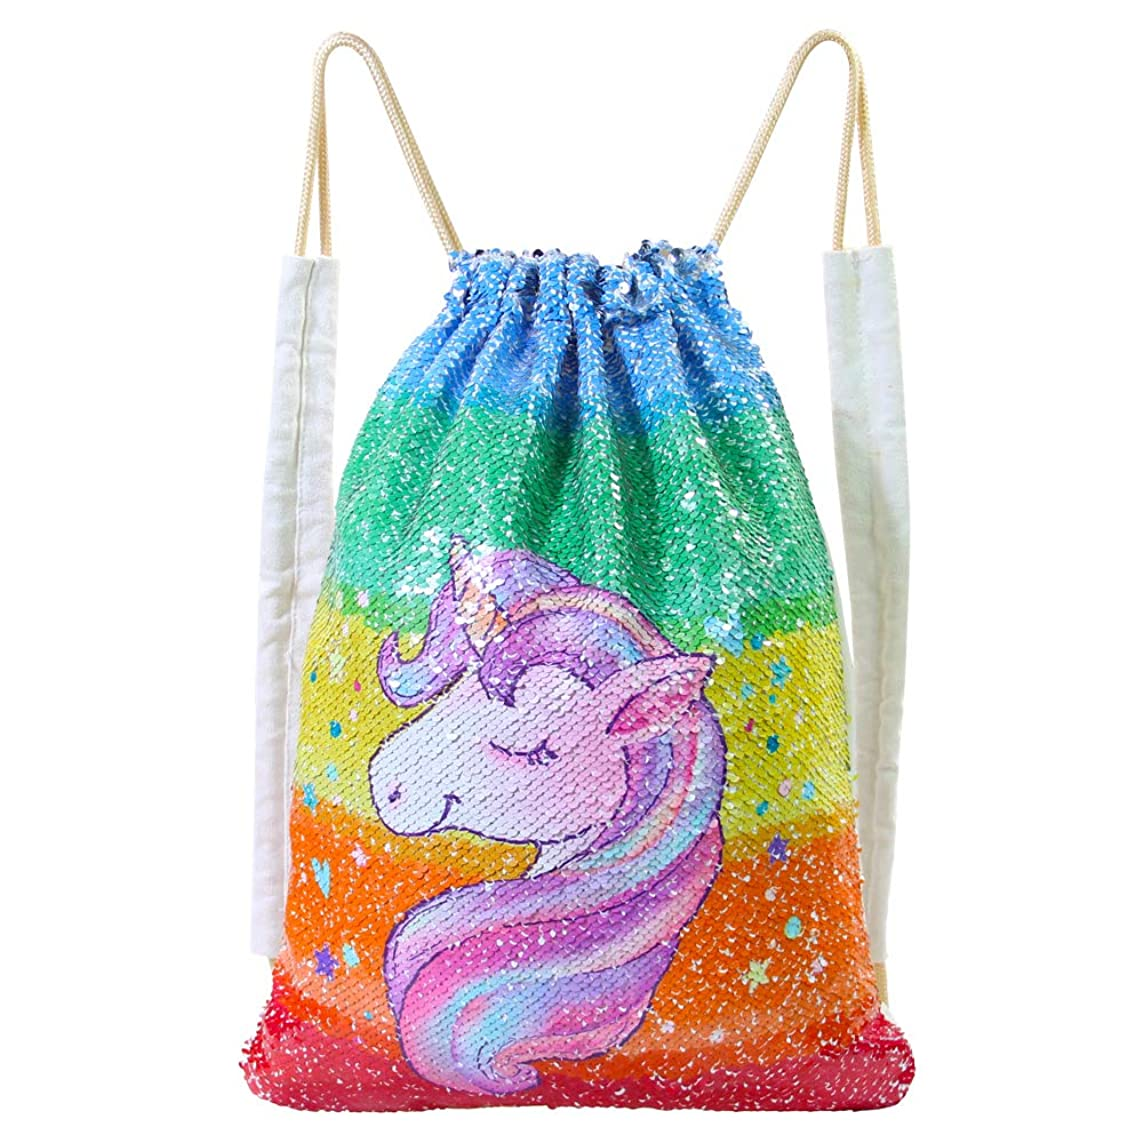 ICOSY Mermaid Sequin Bag Magic Reversible Sequin Drawstring Backpack Glitter Dance Bags Flip Sequins Backpack Bags Shining Sports Backpack for Kids Adults (13.8